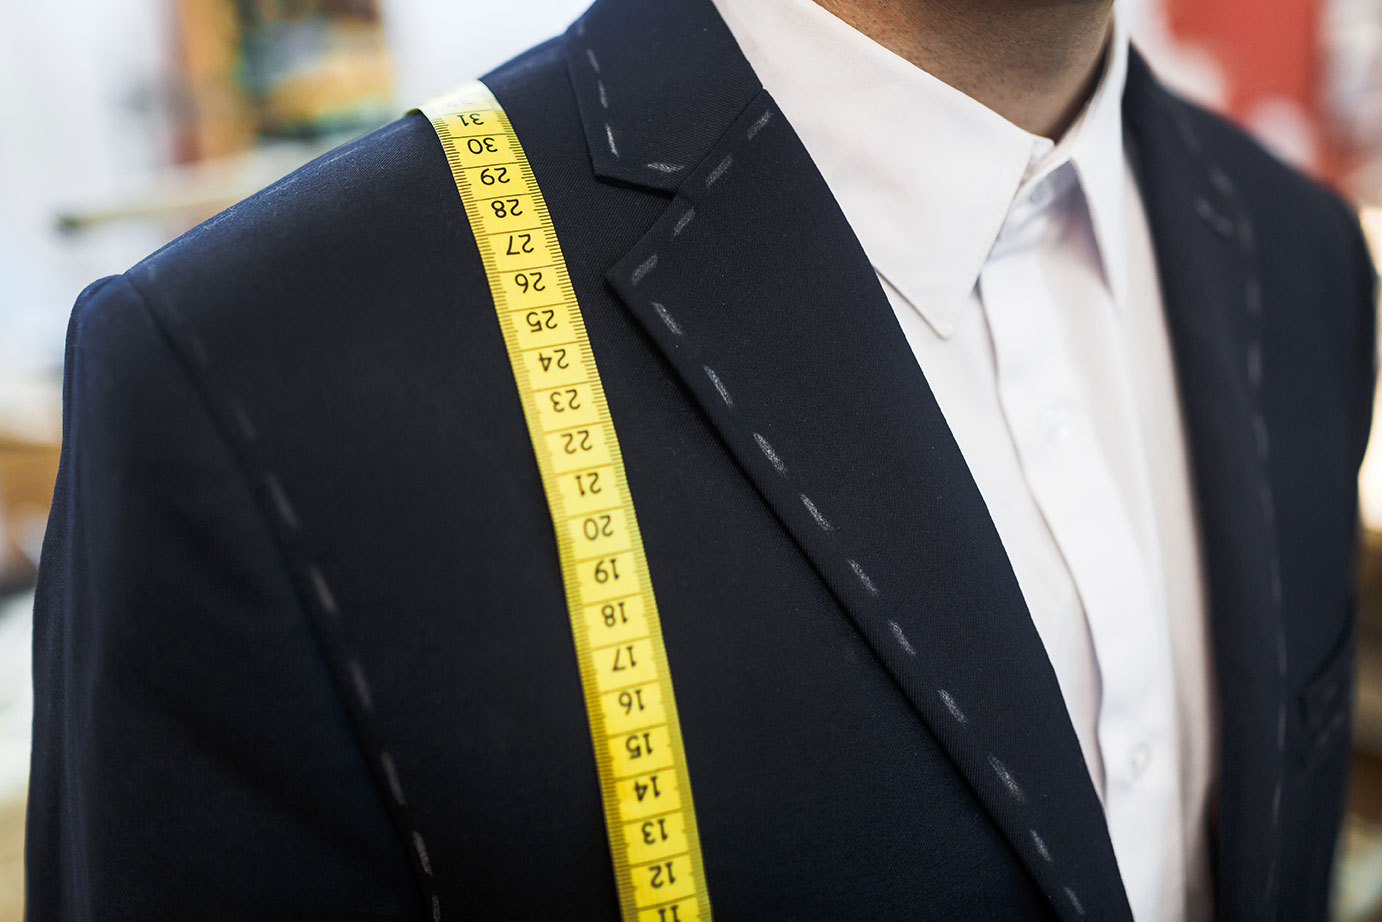 new-jacket-and-measuring-tape-on-businessman_rLWlNuBDRW